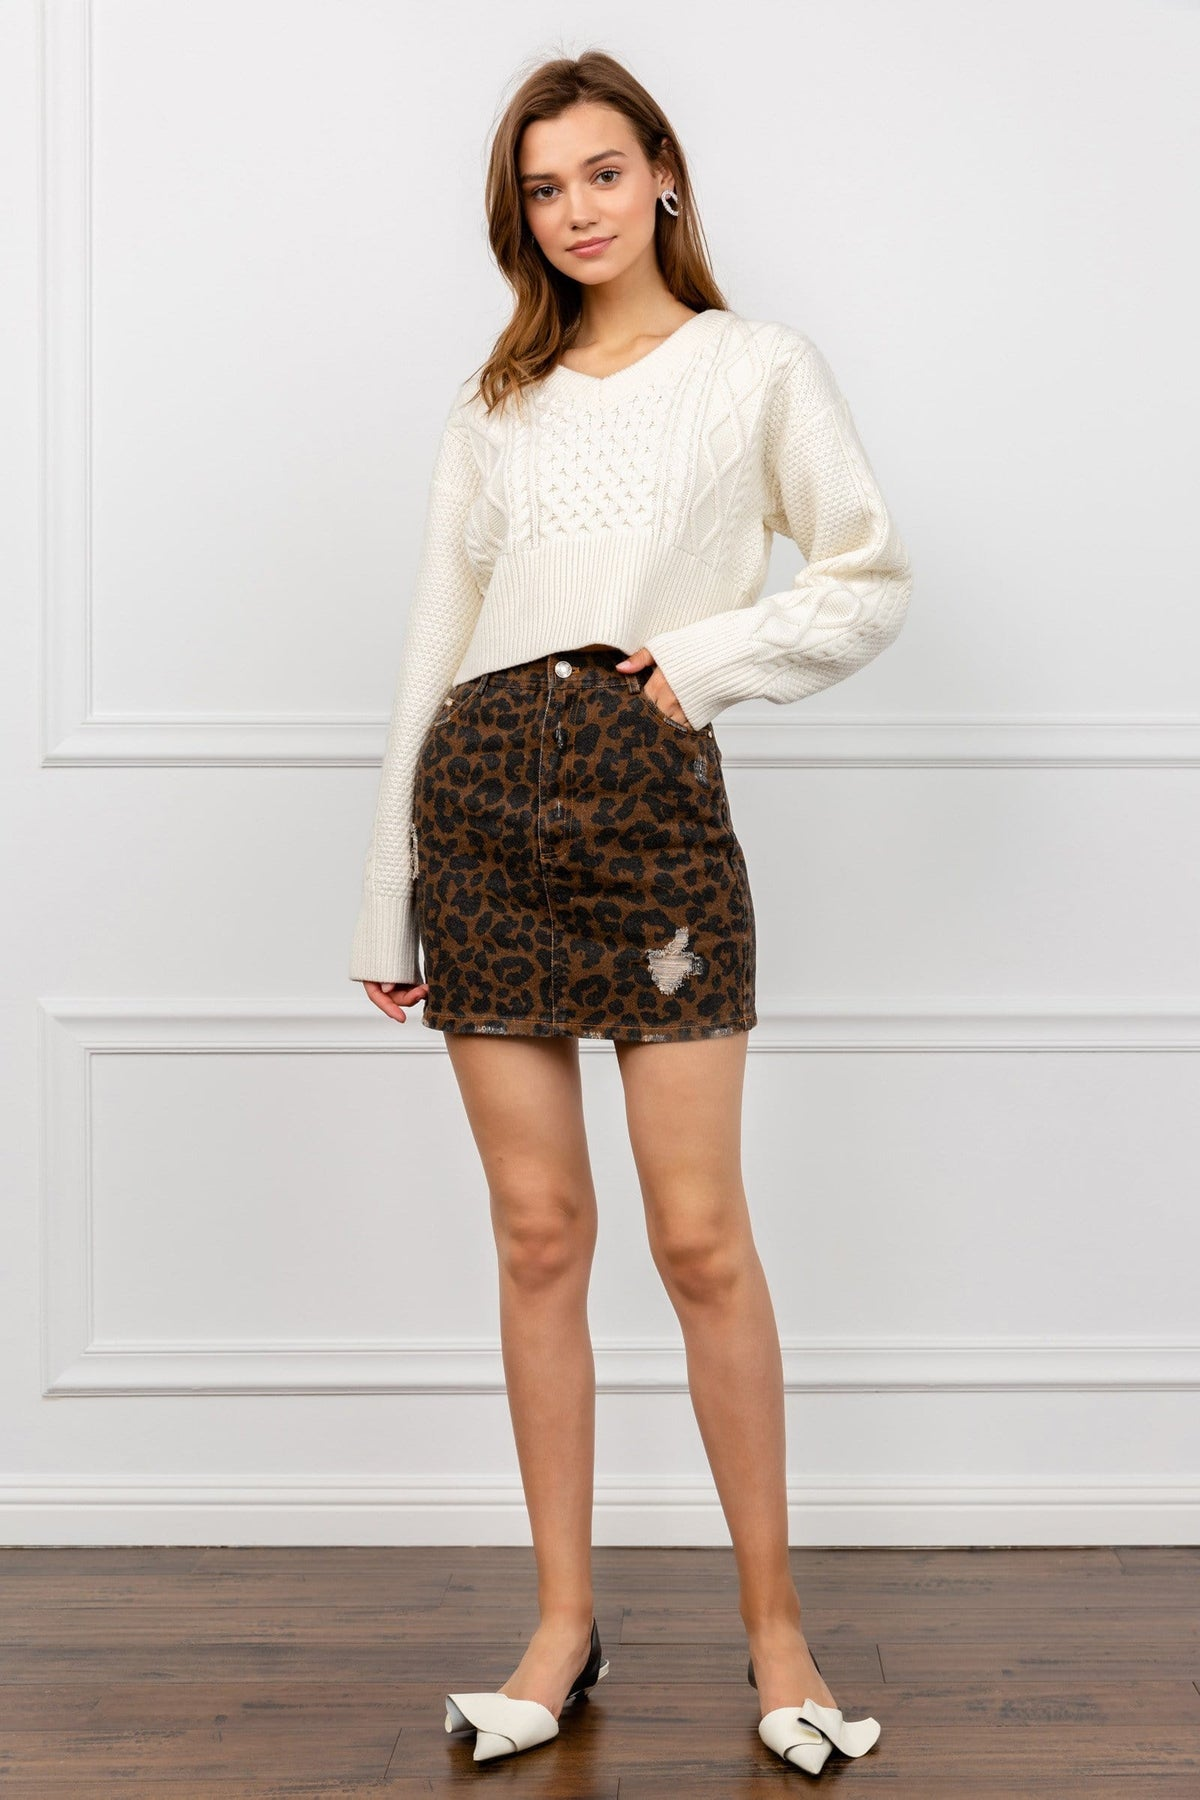 Brown Cheetah Print Mini Denim Skirt | J.ING Women's Apparel